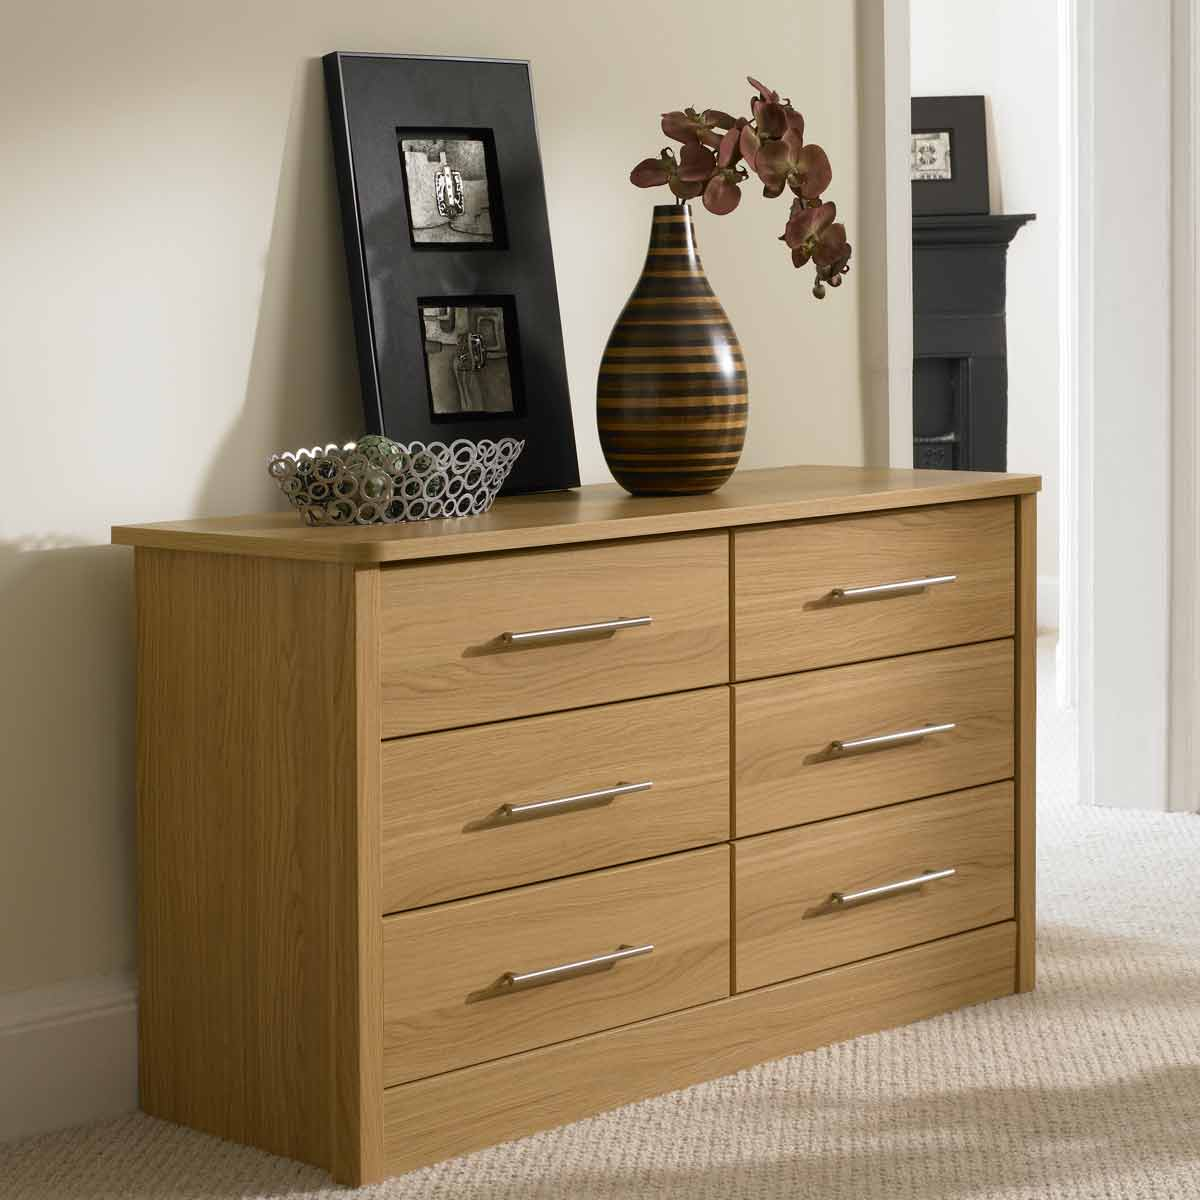 dressers including corner bedroom dresser pictures for inspirations